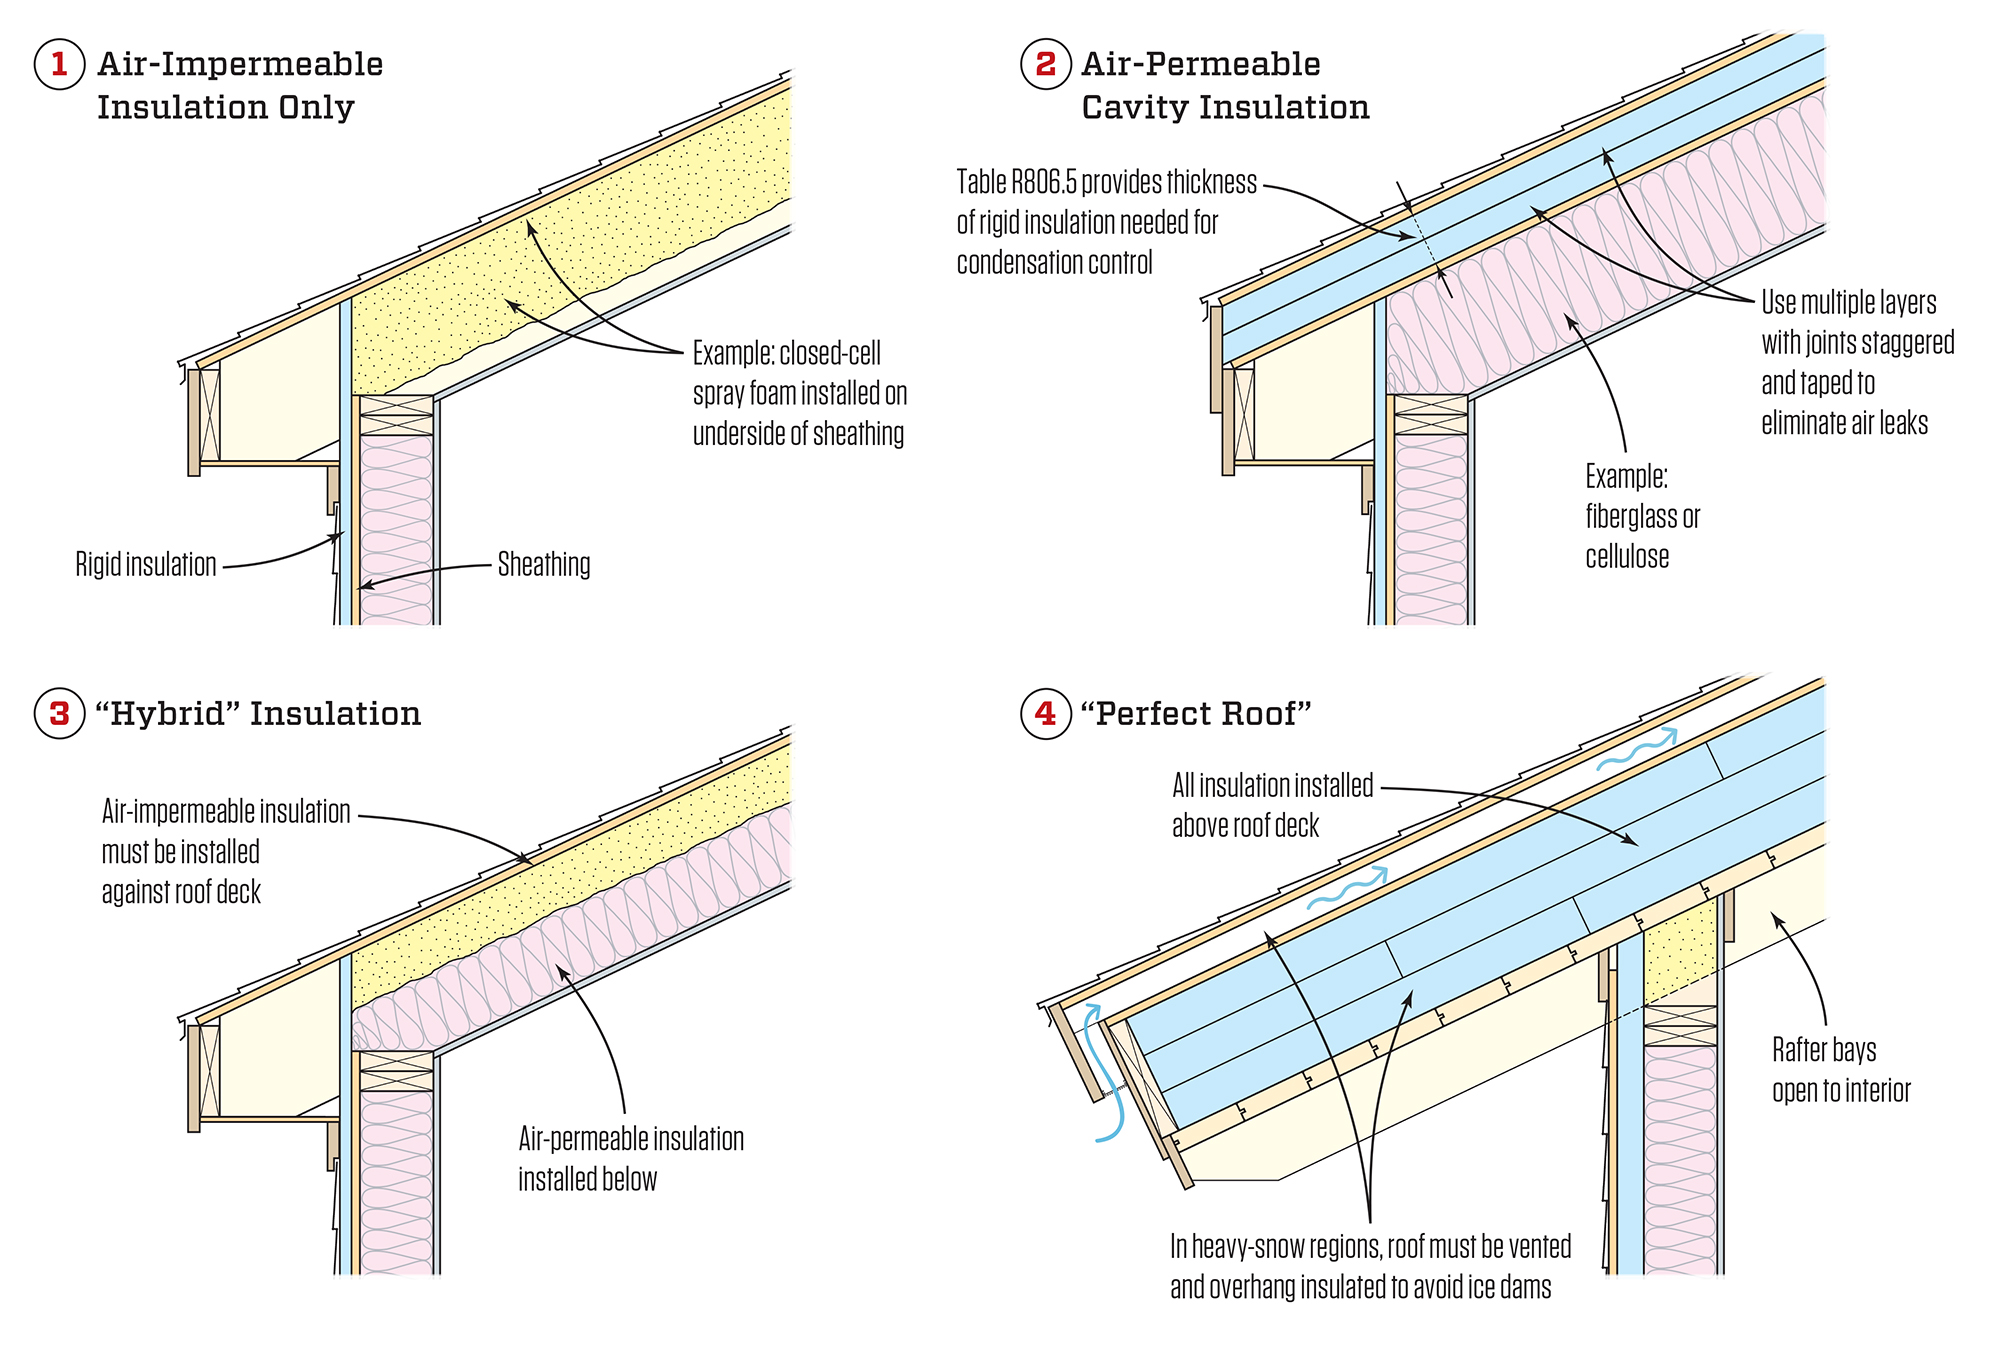 Avoiding Wet Roofs Part Ii Jlc Online Building